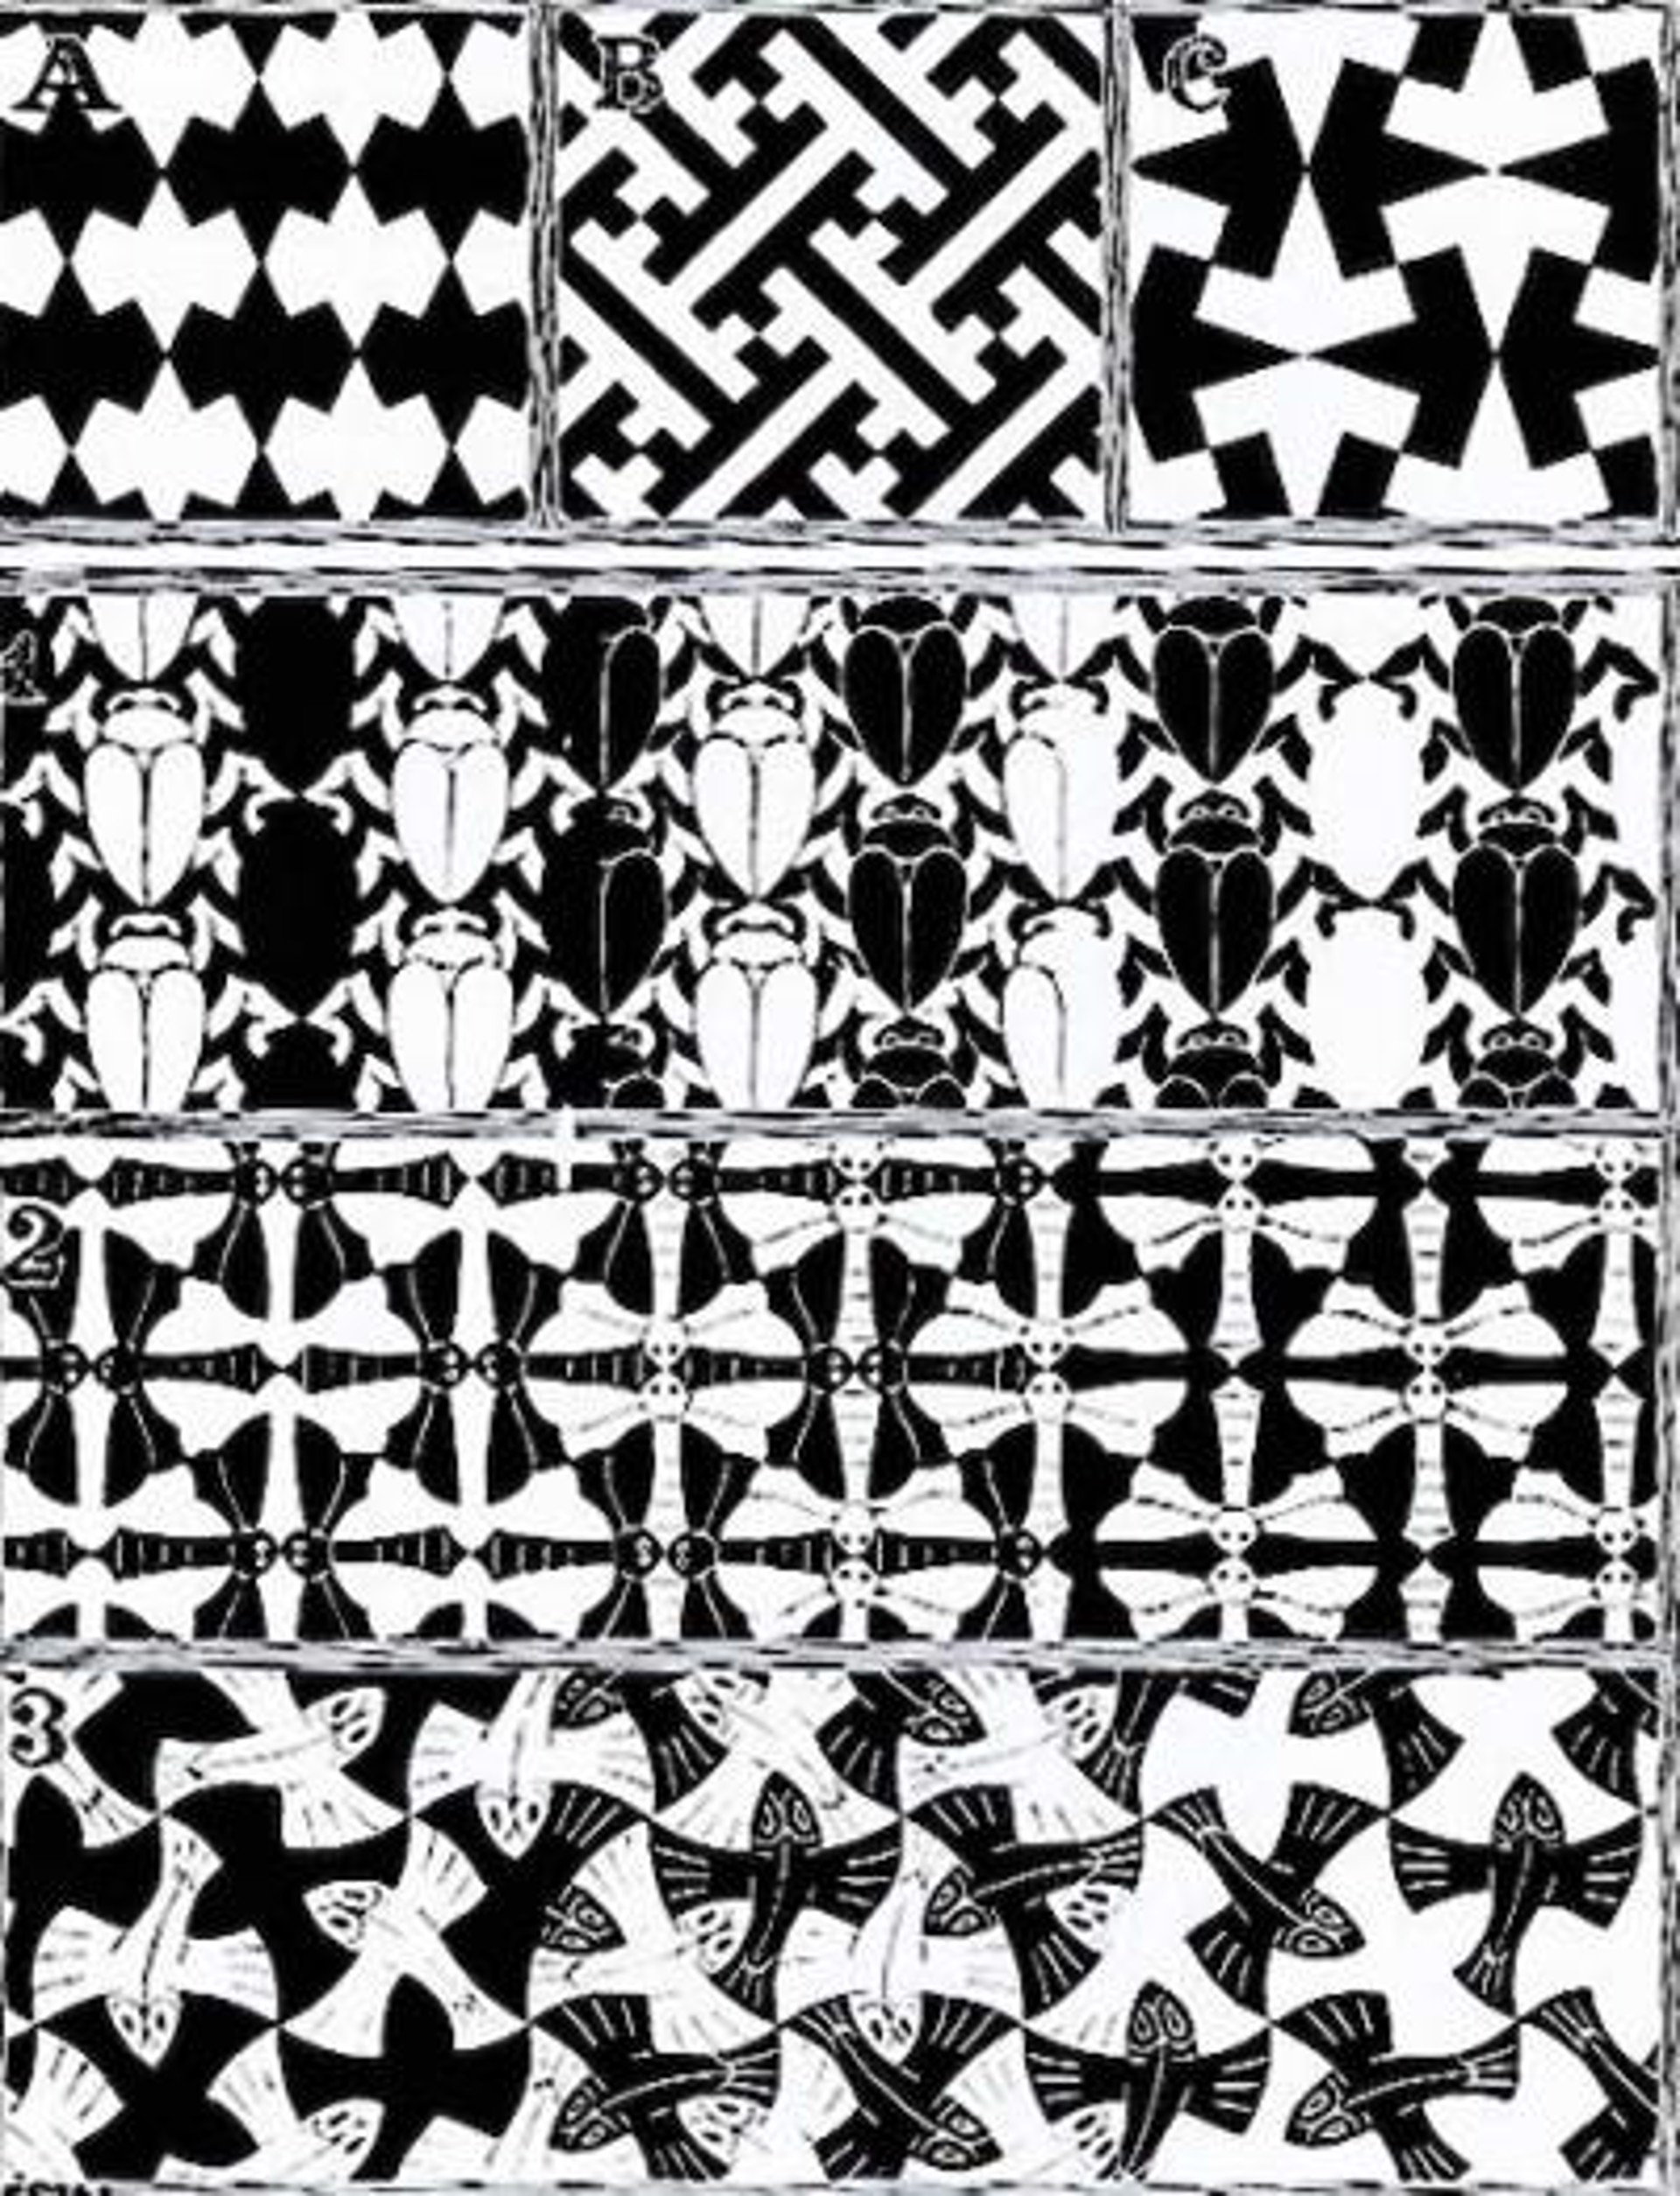 Regular Division of the Plane II by M.C. Escher